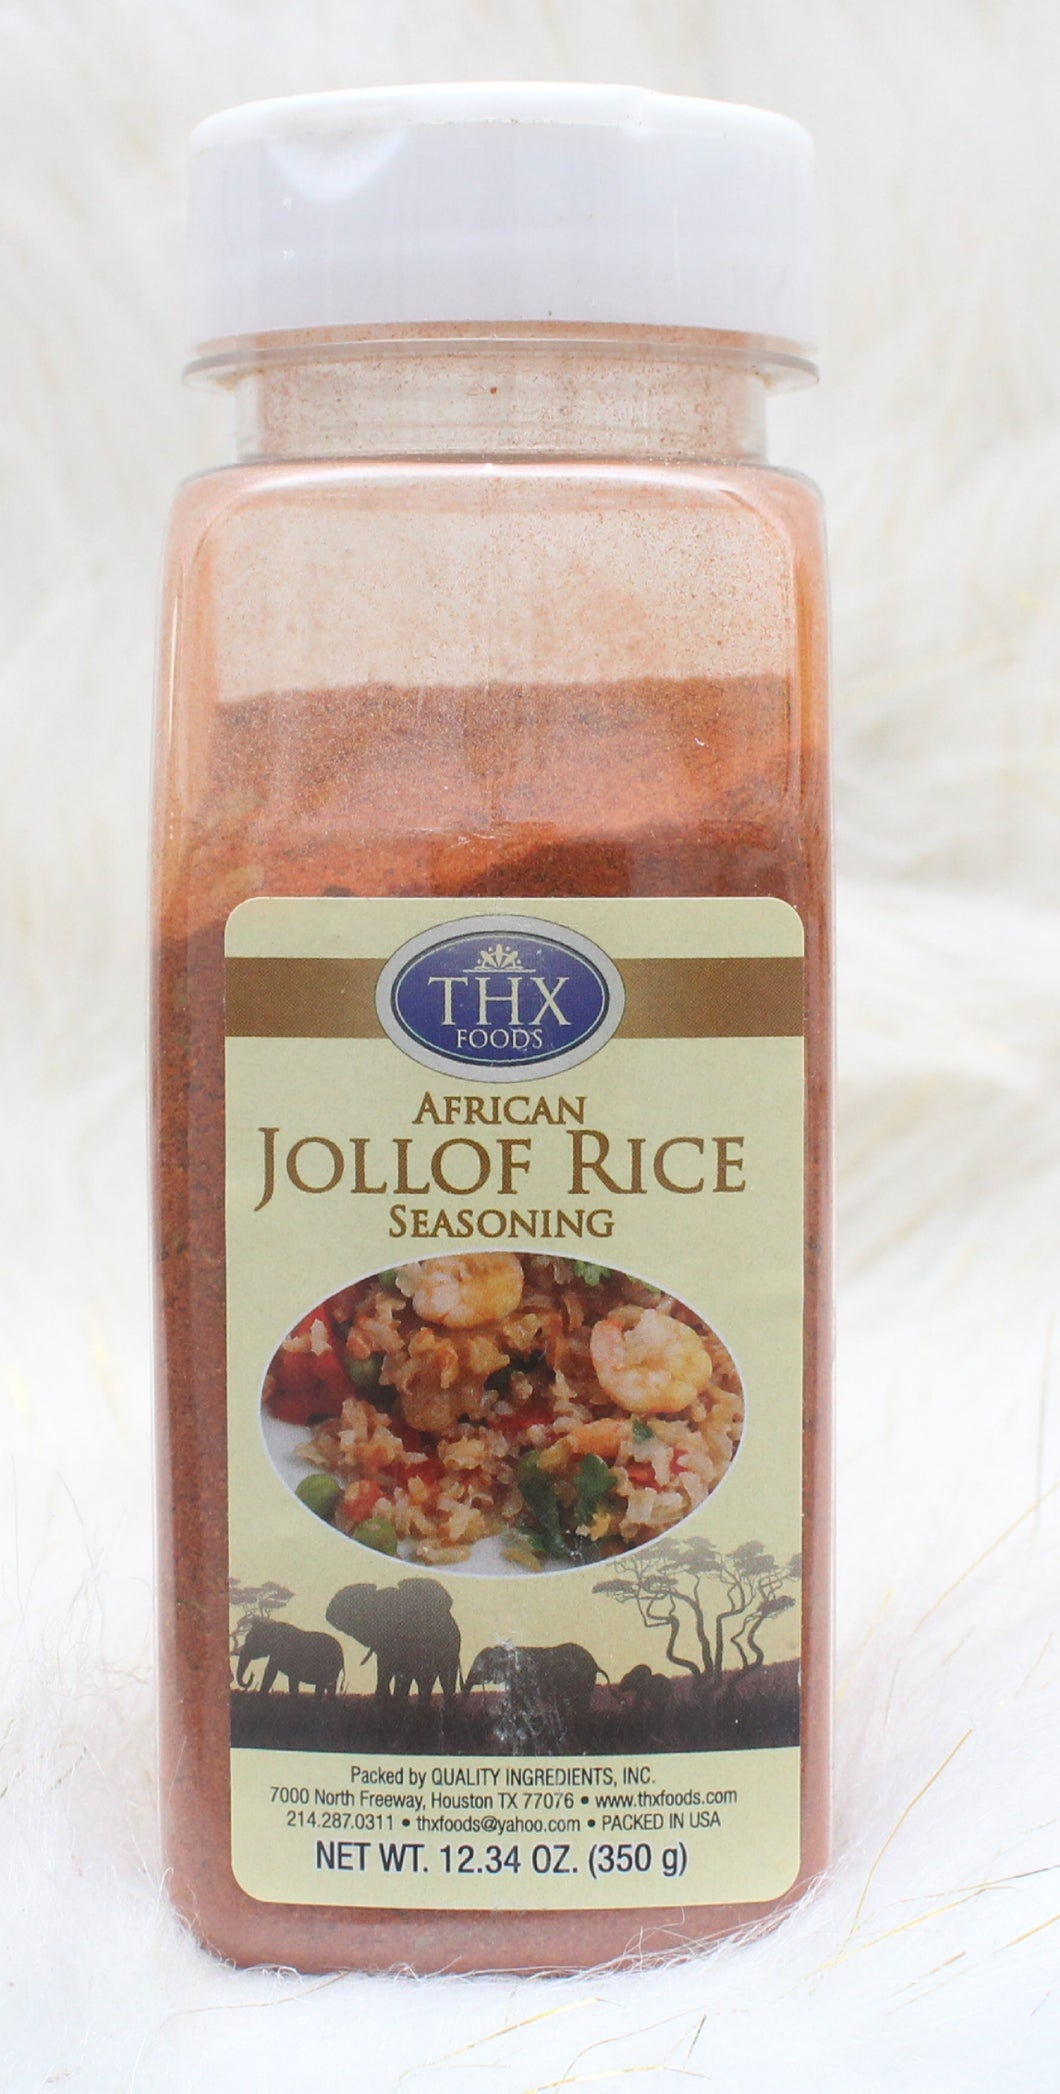 THX| Jellof Rice Seasoning